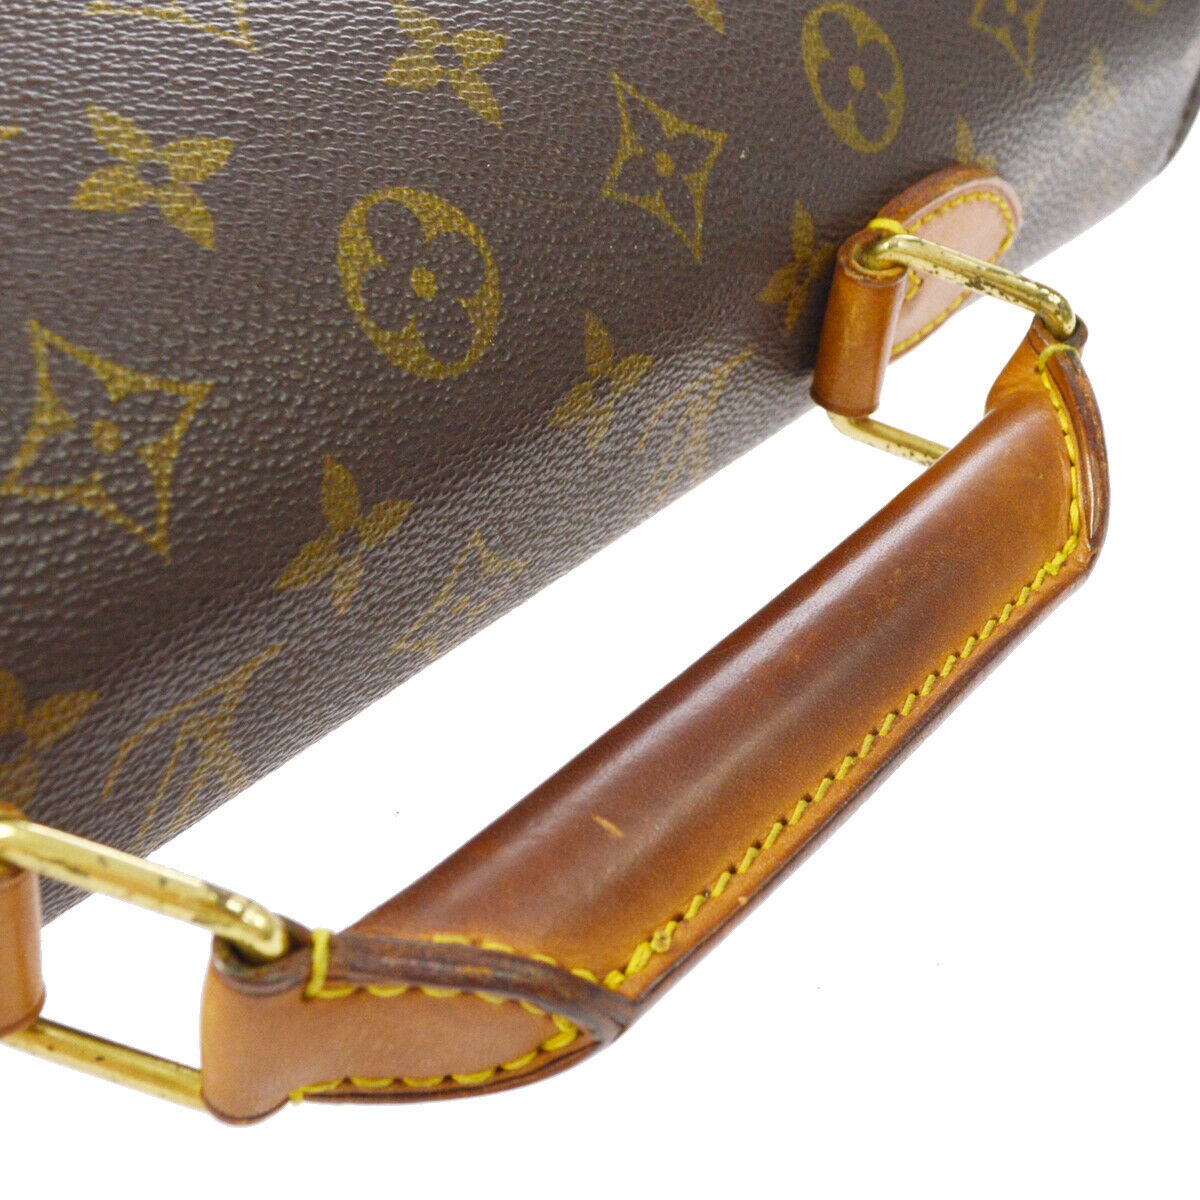 Louis Vuitton SERVIETTE CONSEILLER Monogram M53331 Hand Bag 11533